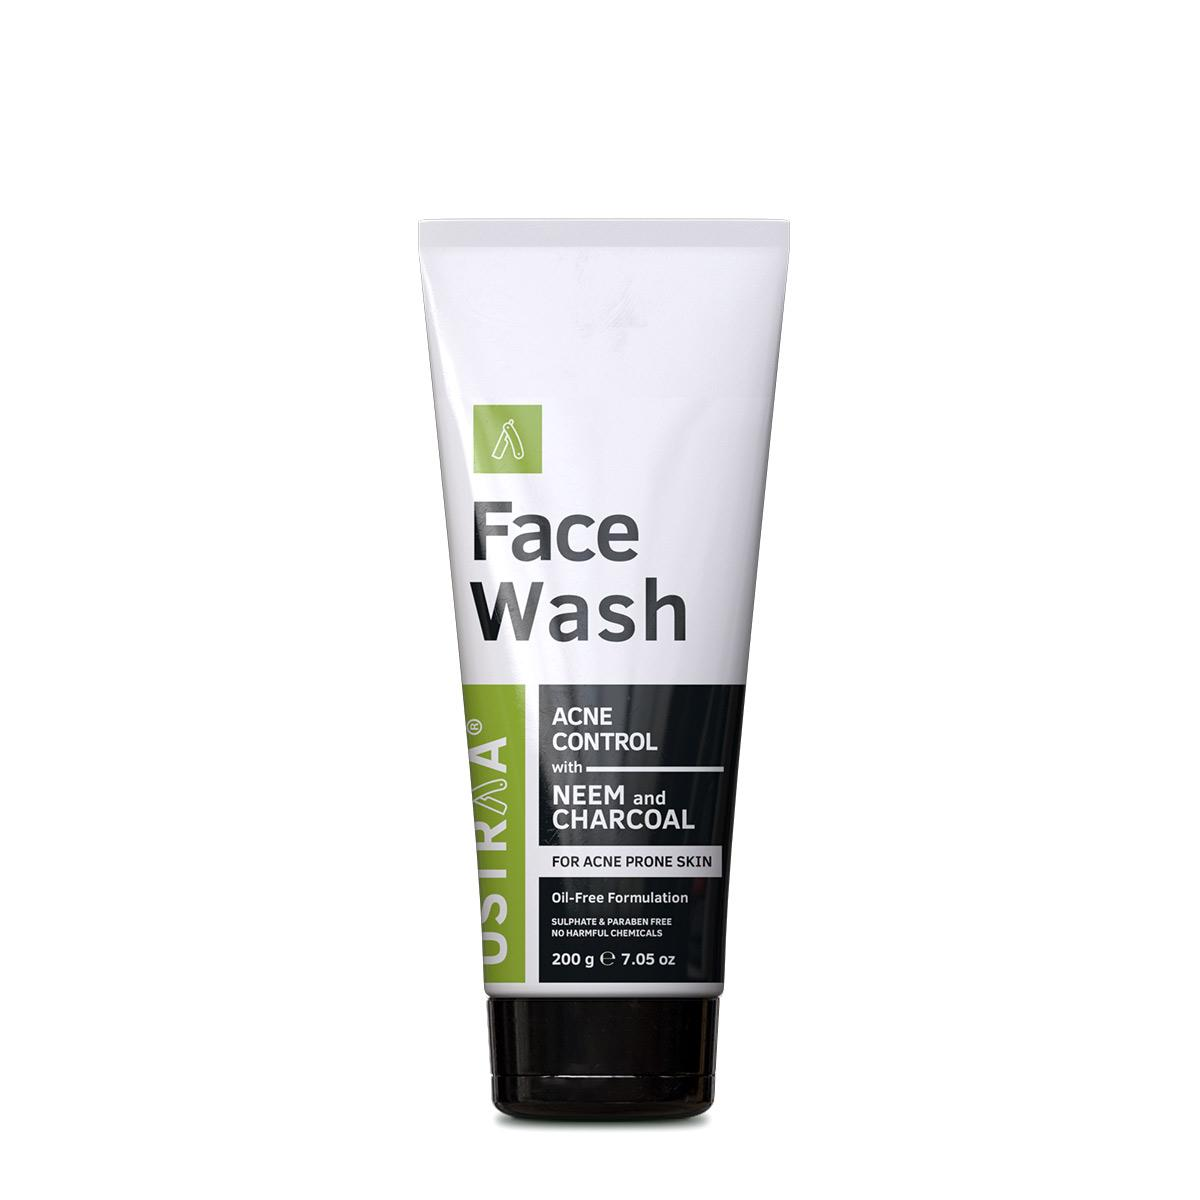 Ustraa Men's Face Wash 200 g - A Face Wash for Acne prone men with Neem and Charcoal for Acne Control